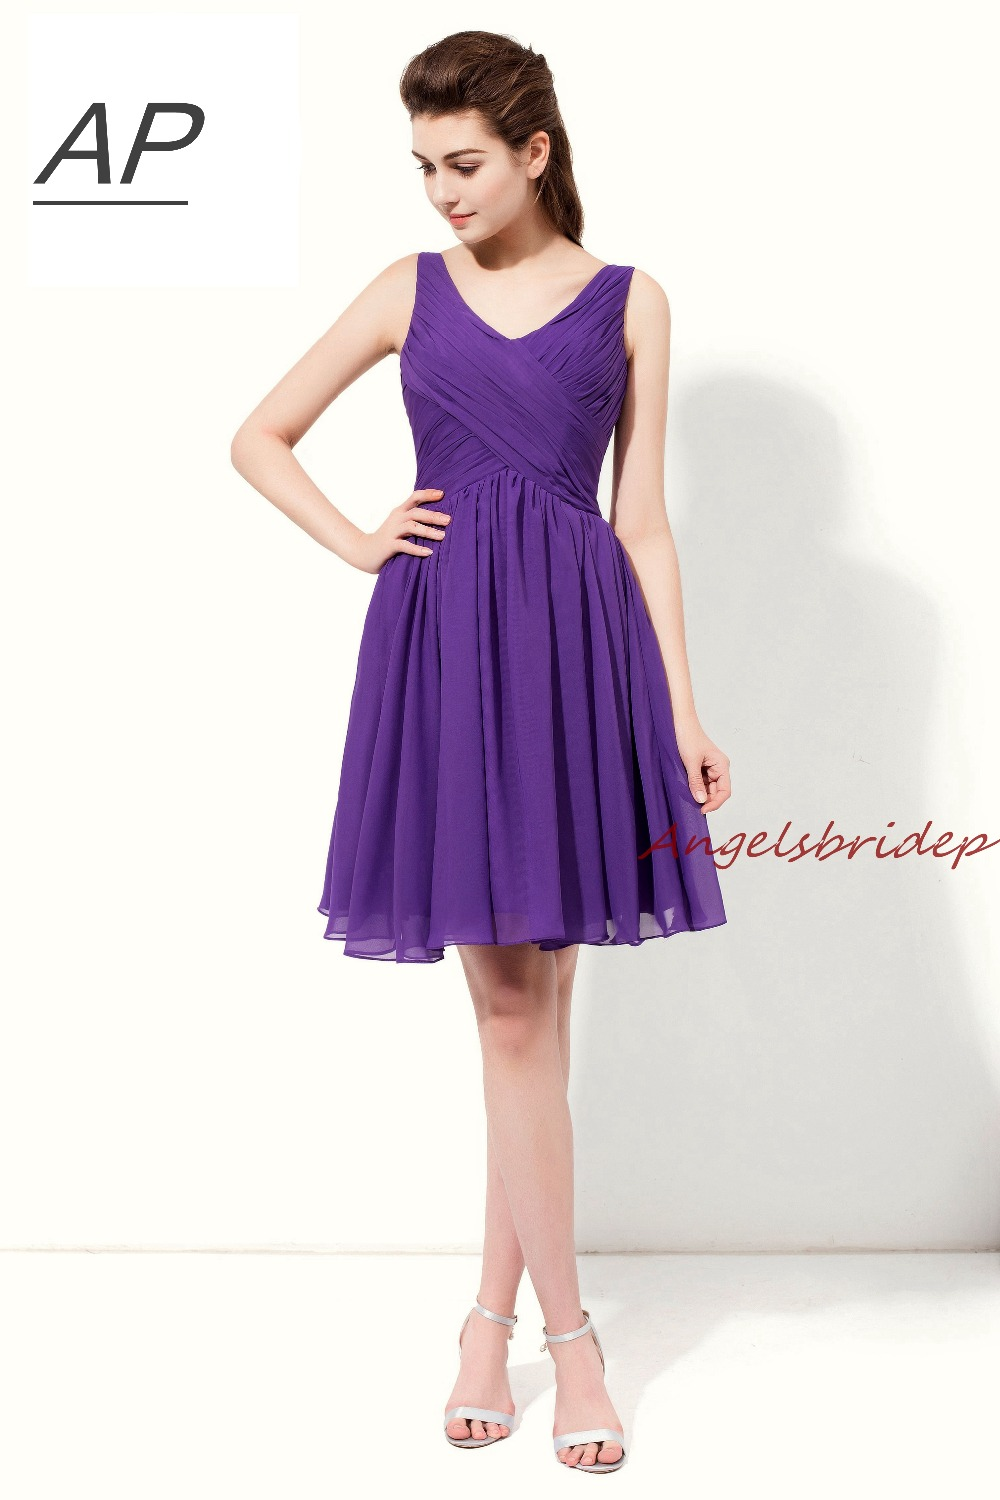 Angelsbridep Chiffon Purple Summer Short Bridesmaid Dresses V-neck Chiffon Robe Demoiselle D'honneur Party Gown Formal Dress Smoothing Circulation And Stopping Pains